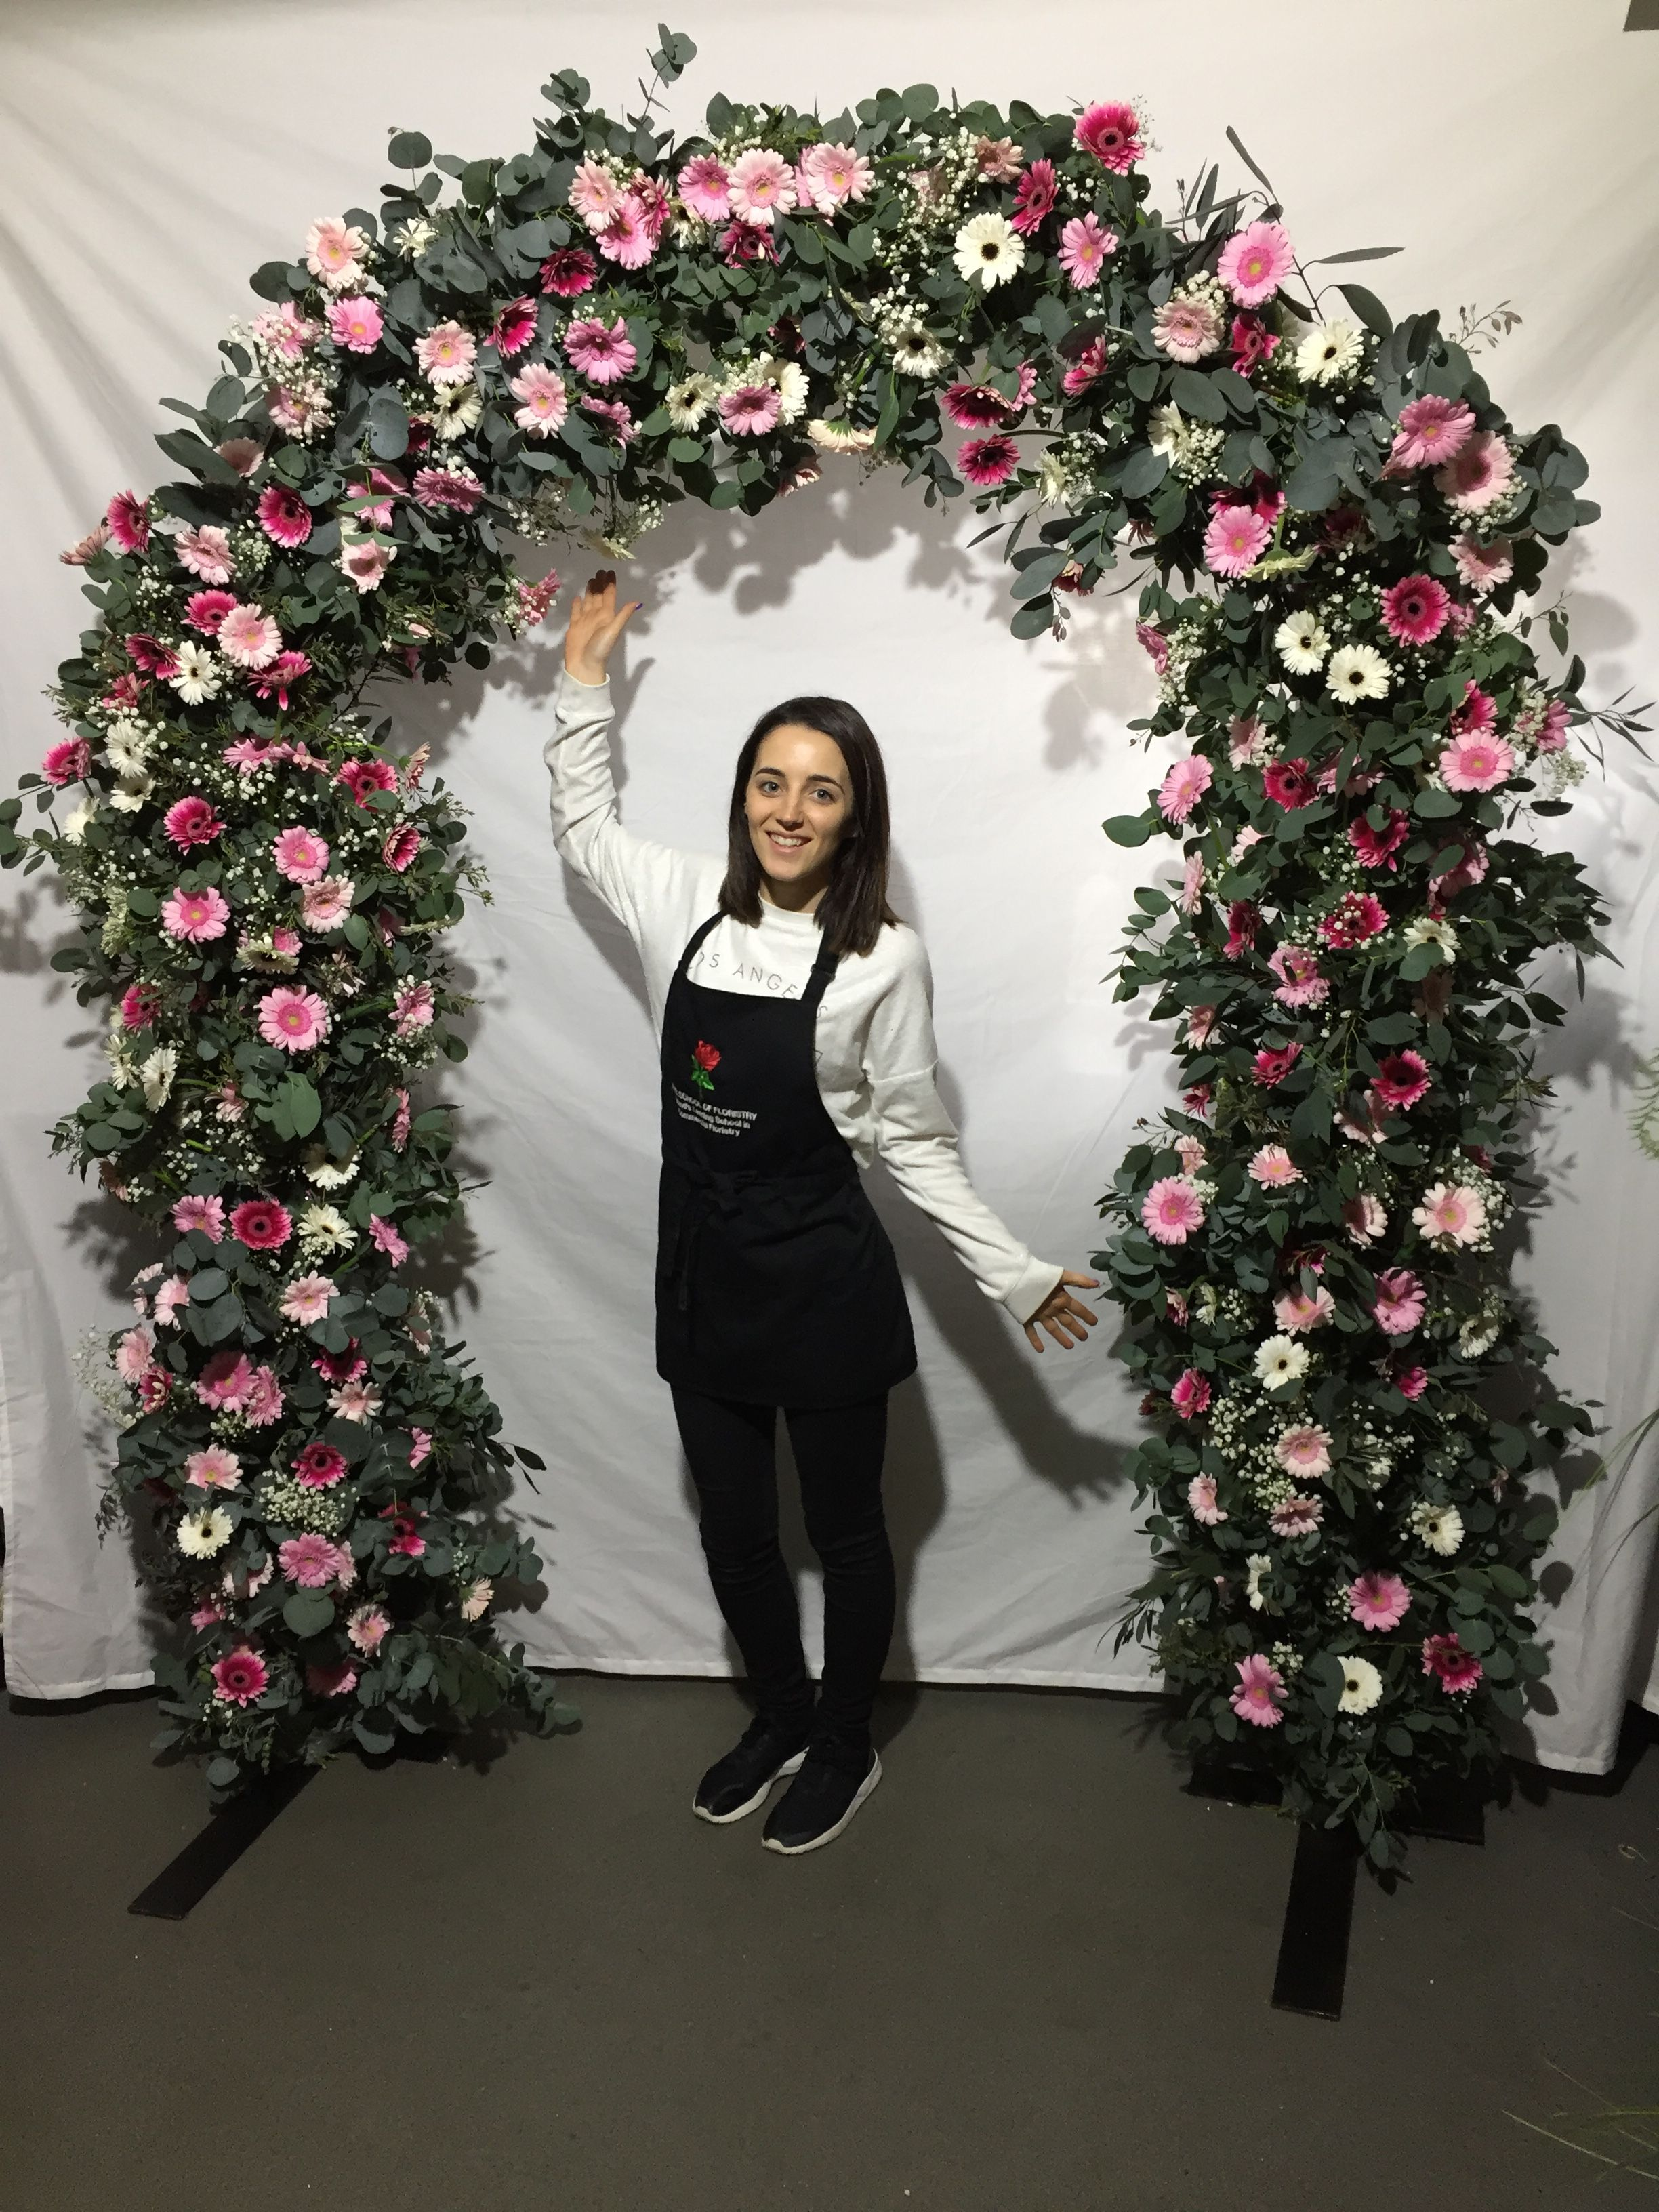 Floral Arches by Kay's Flower School | Floral arch ...